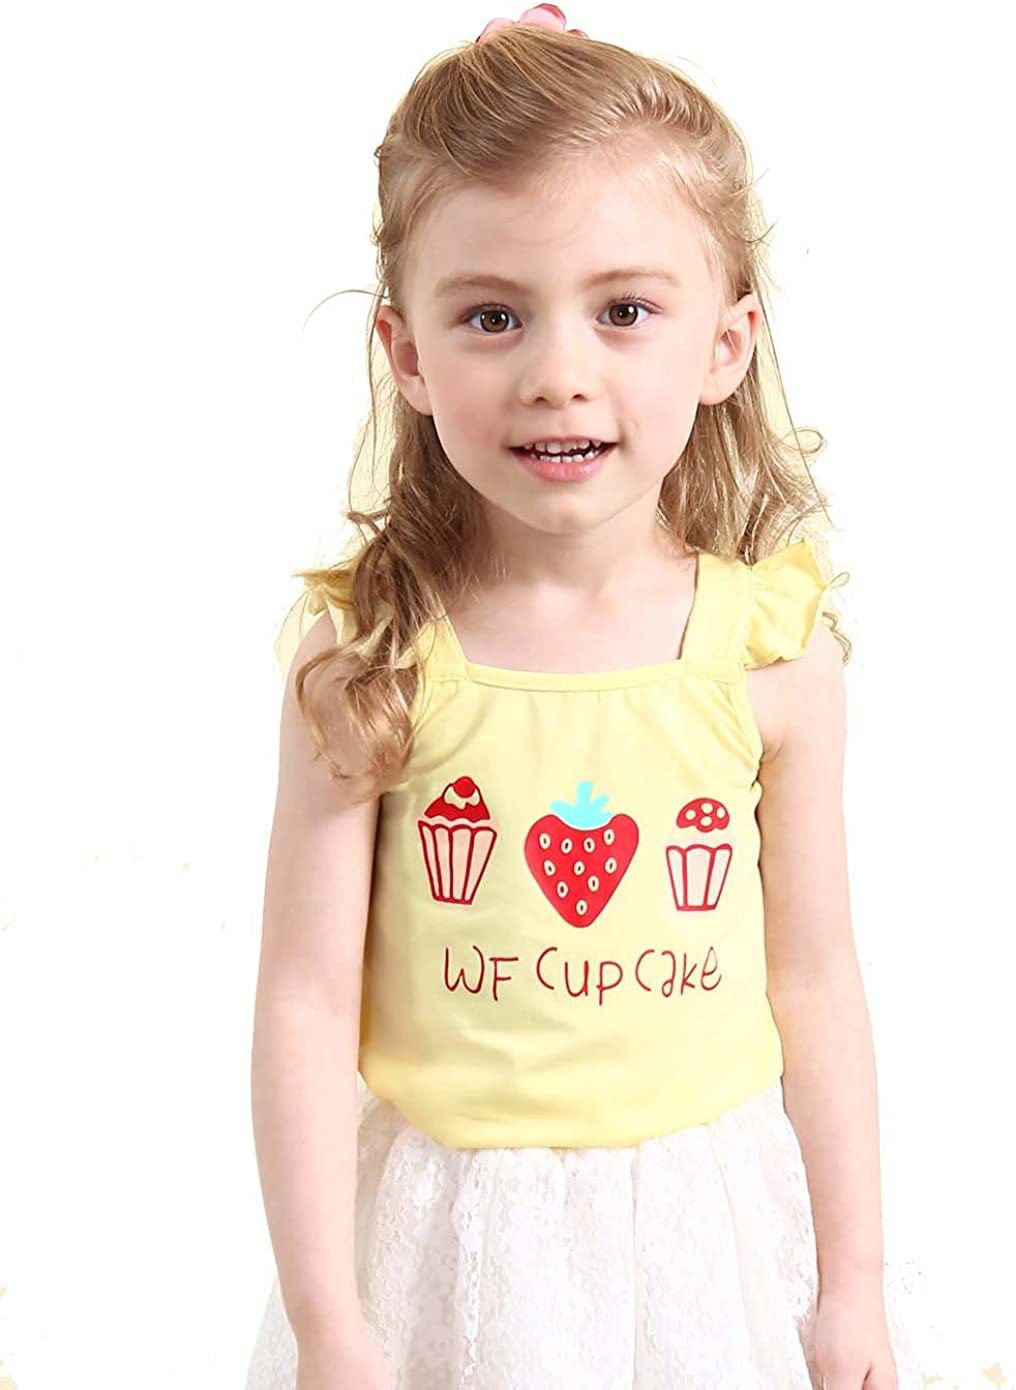 wisefin Toddle Girls Cotton Sleeveless Tank Top Strawberry Cute Printed Multicolor Summer Casual Vest (Yellow, 5-6years)